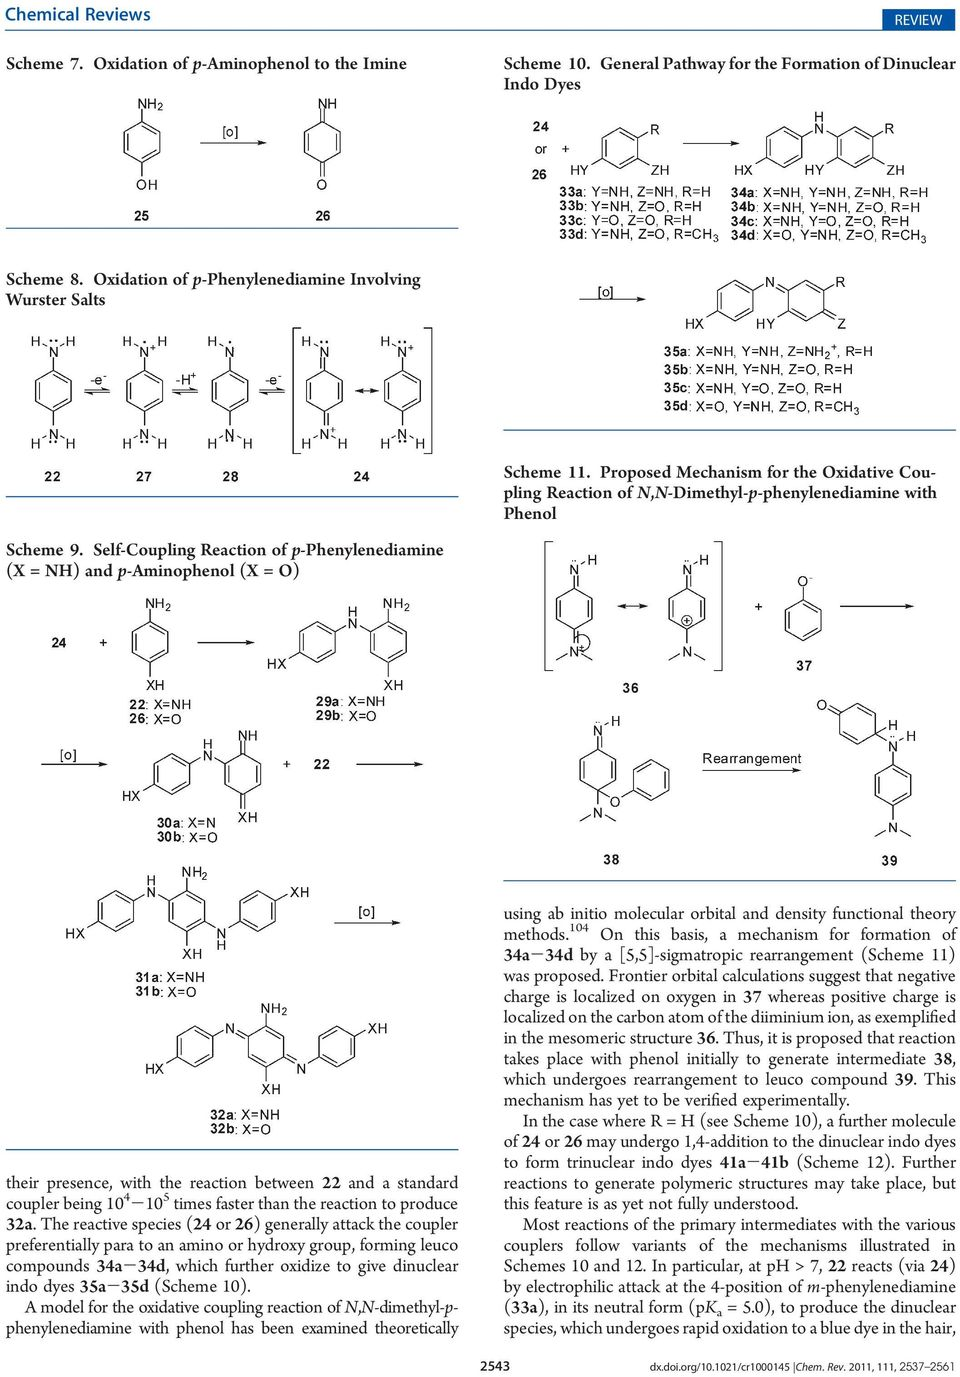 Self-Coupling Reaction of p-phenylenediamine (X = NH) and p-aminophenol (X = O) their presence, with the reaction between 22 and a standard coupler being 10 4-10 5 times faster than the reaction to